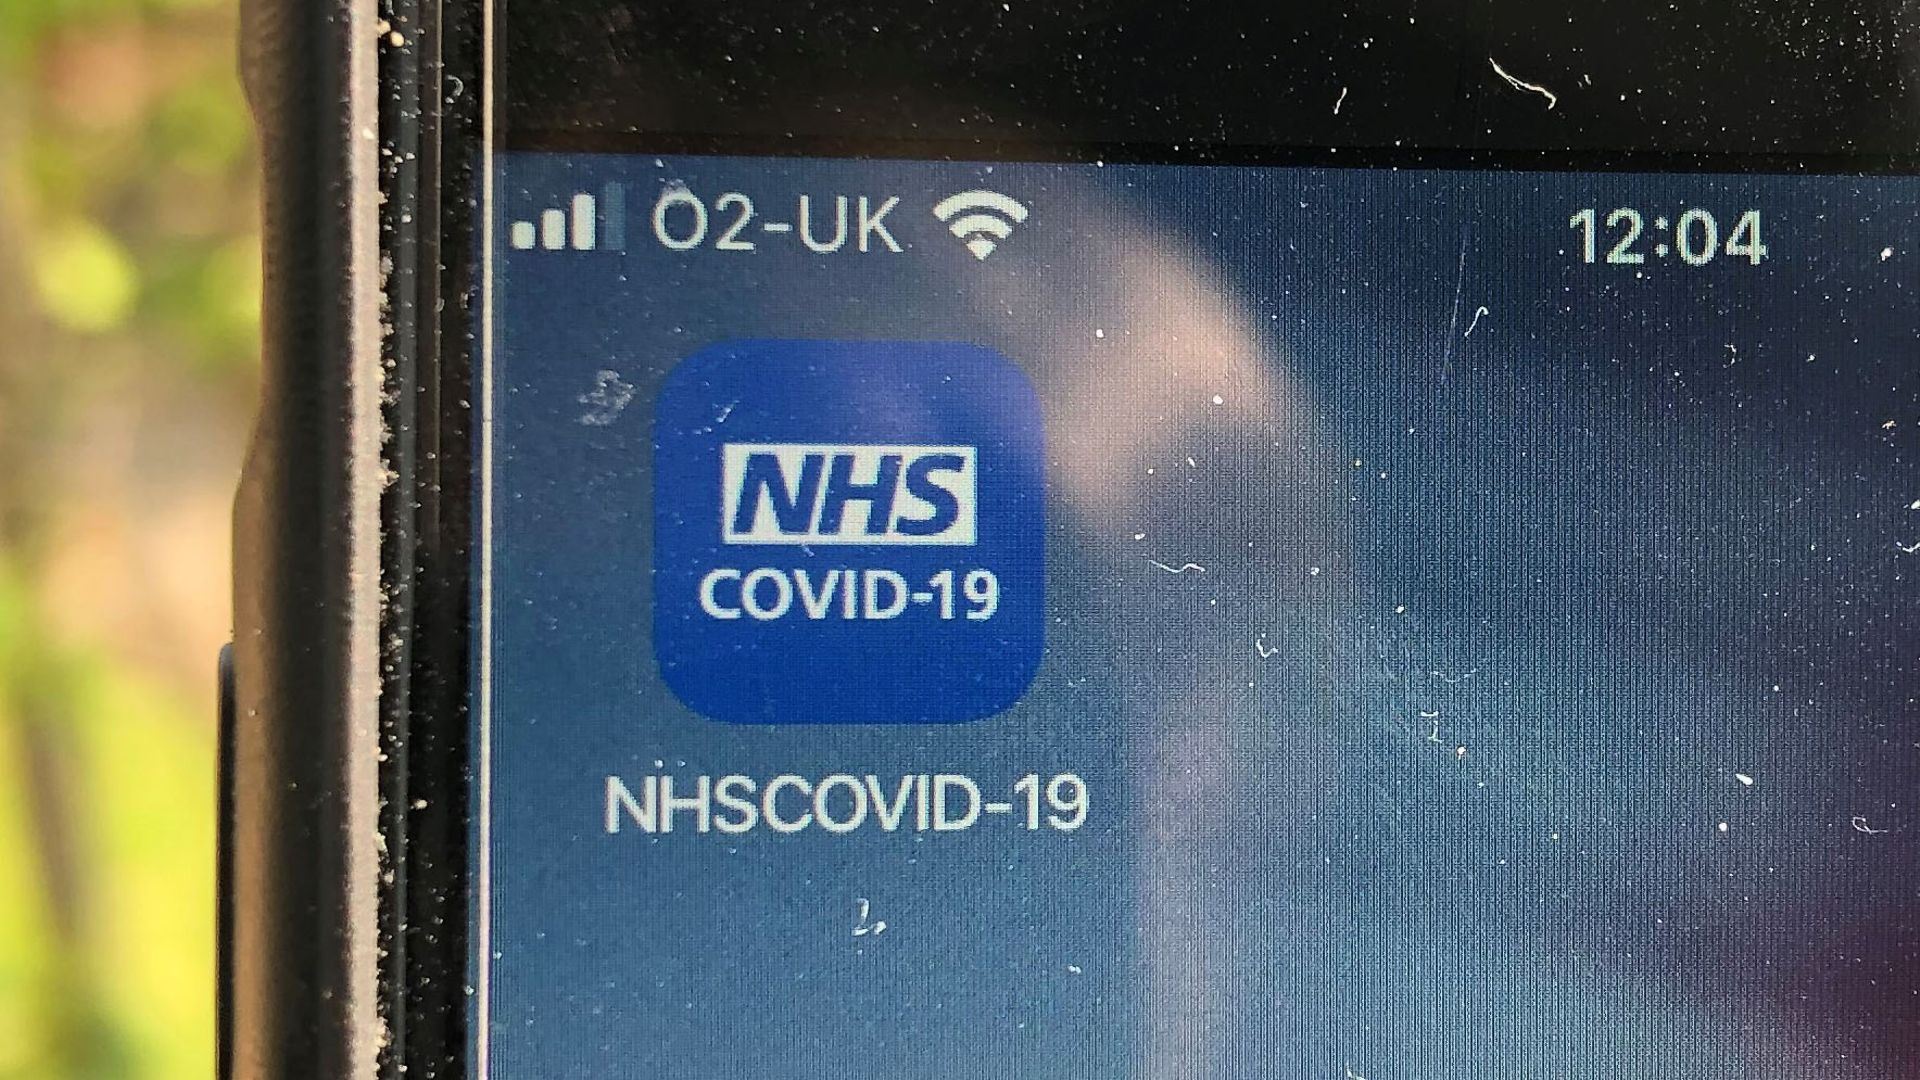 The NHS Covid-19 app on a mobile phone - Credit: PA